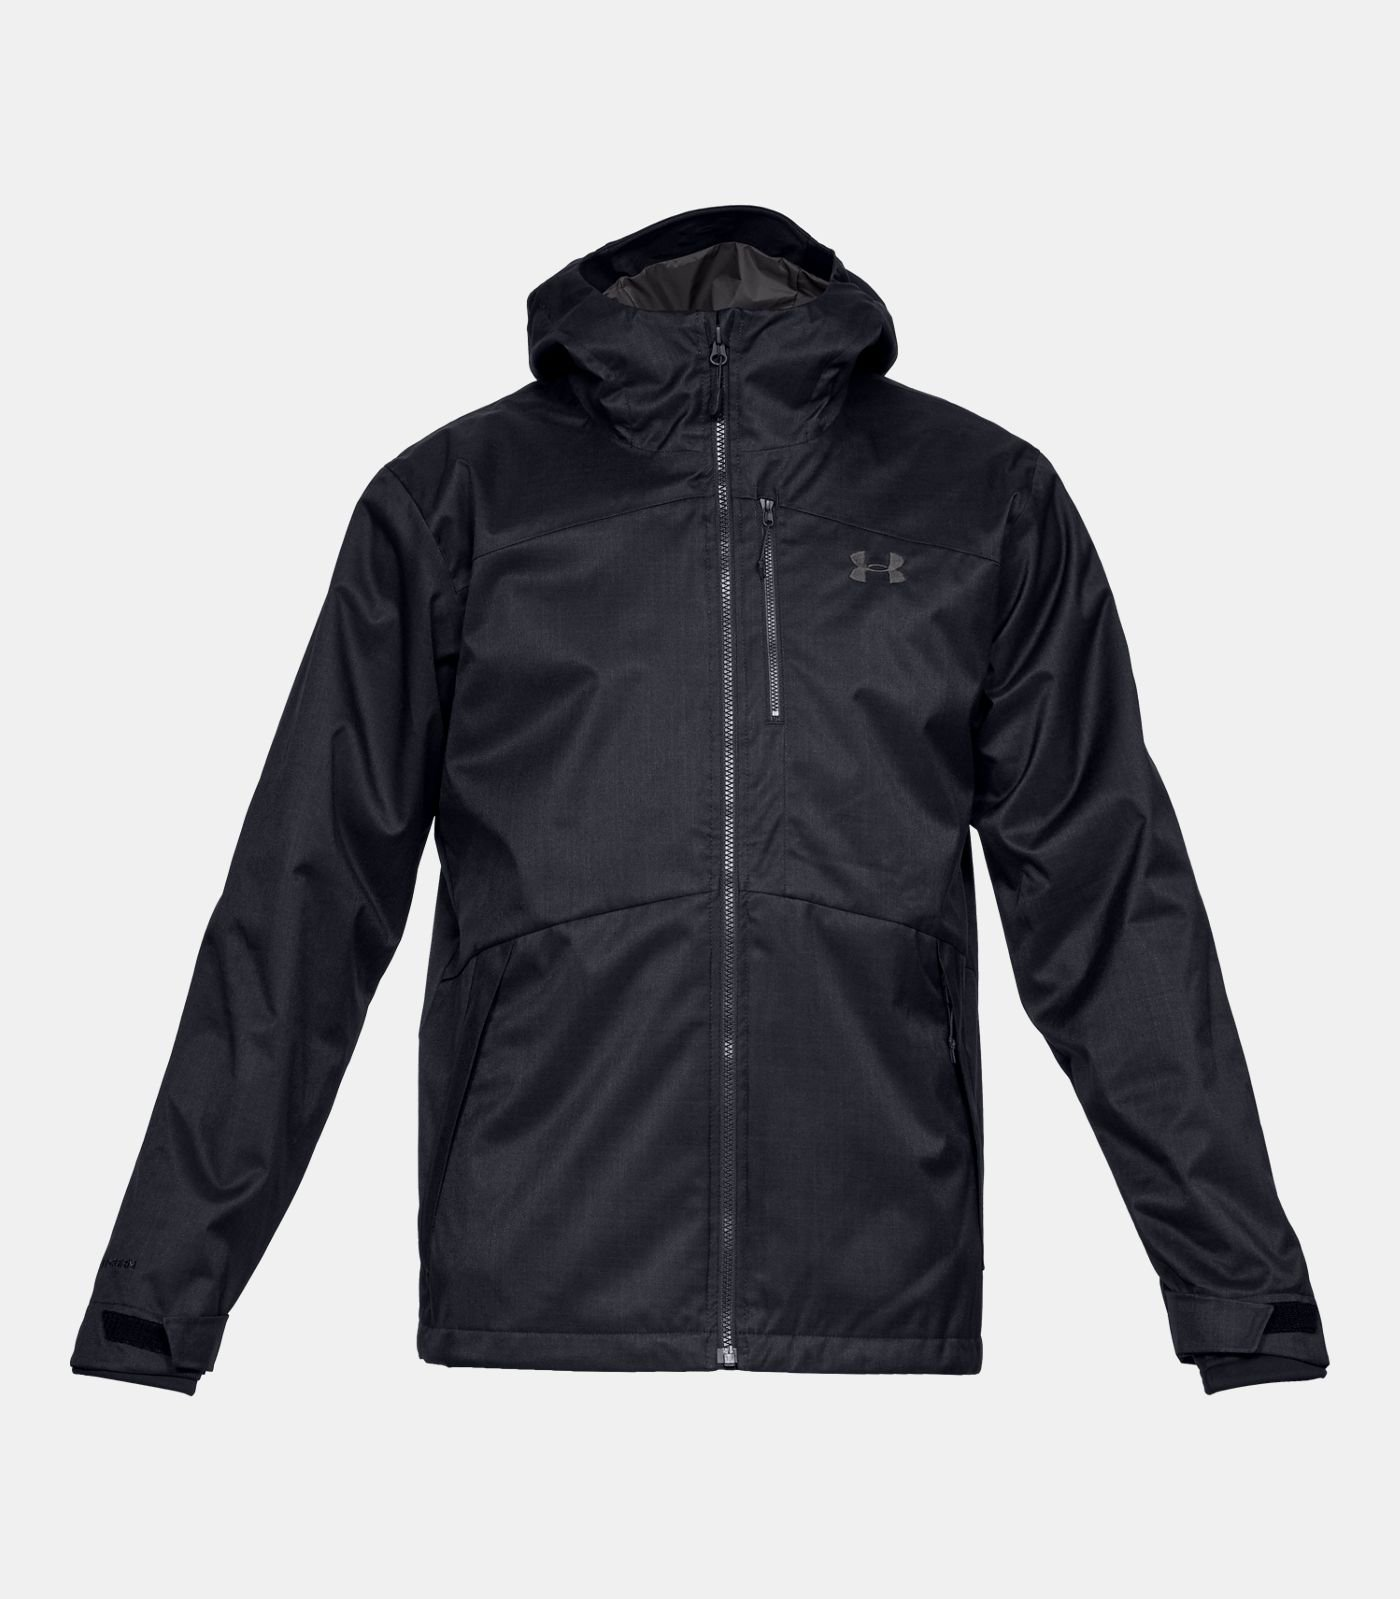 Under Armour Porter 3-in-1 Men's Jacket